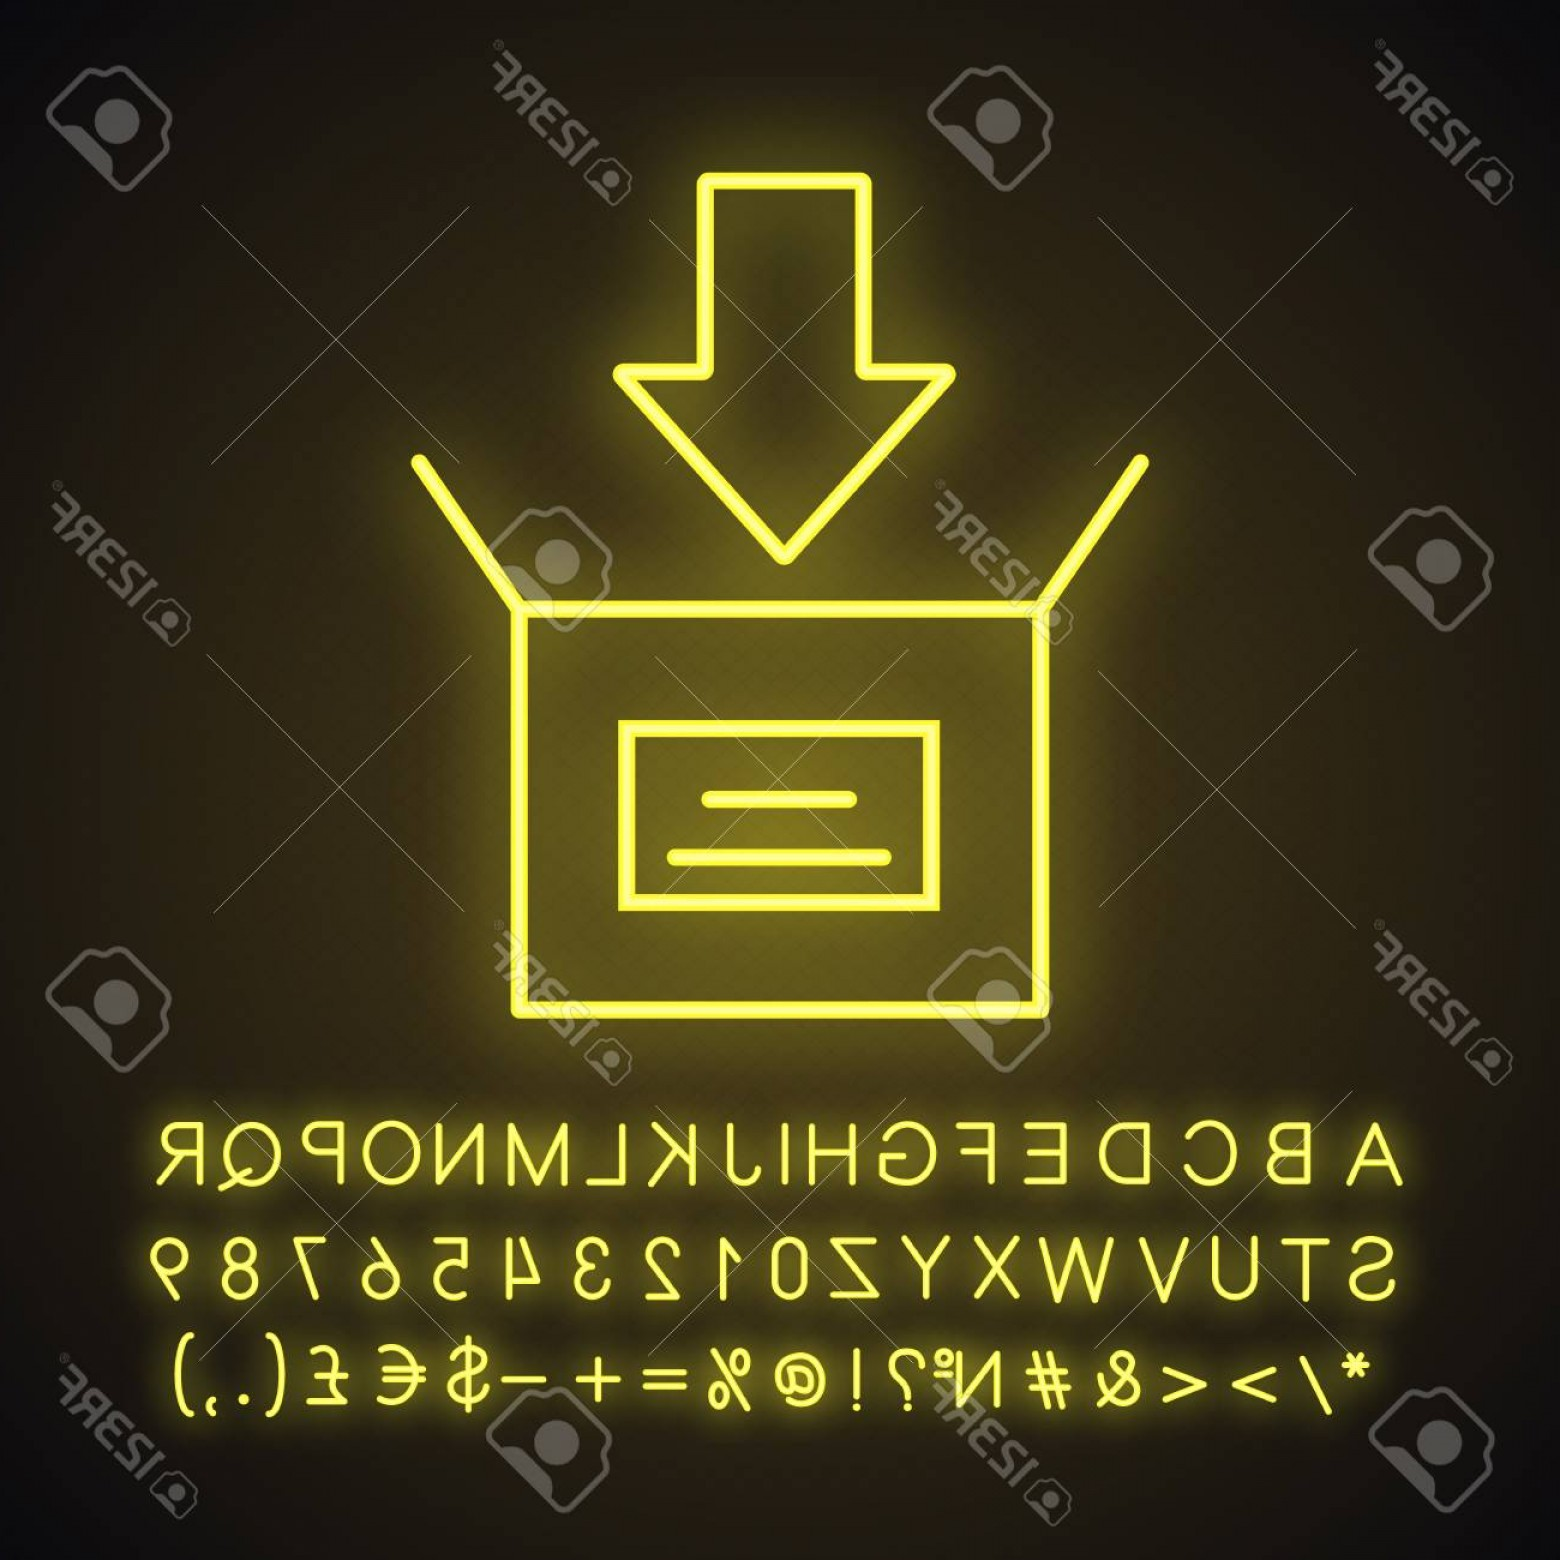 Downloadable Vector Cross: Photostock Vector Parcel Packing Neon Light Icon Open Box With Down Arrow Downloading Glowing Sign With Alphabet Numbe